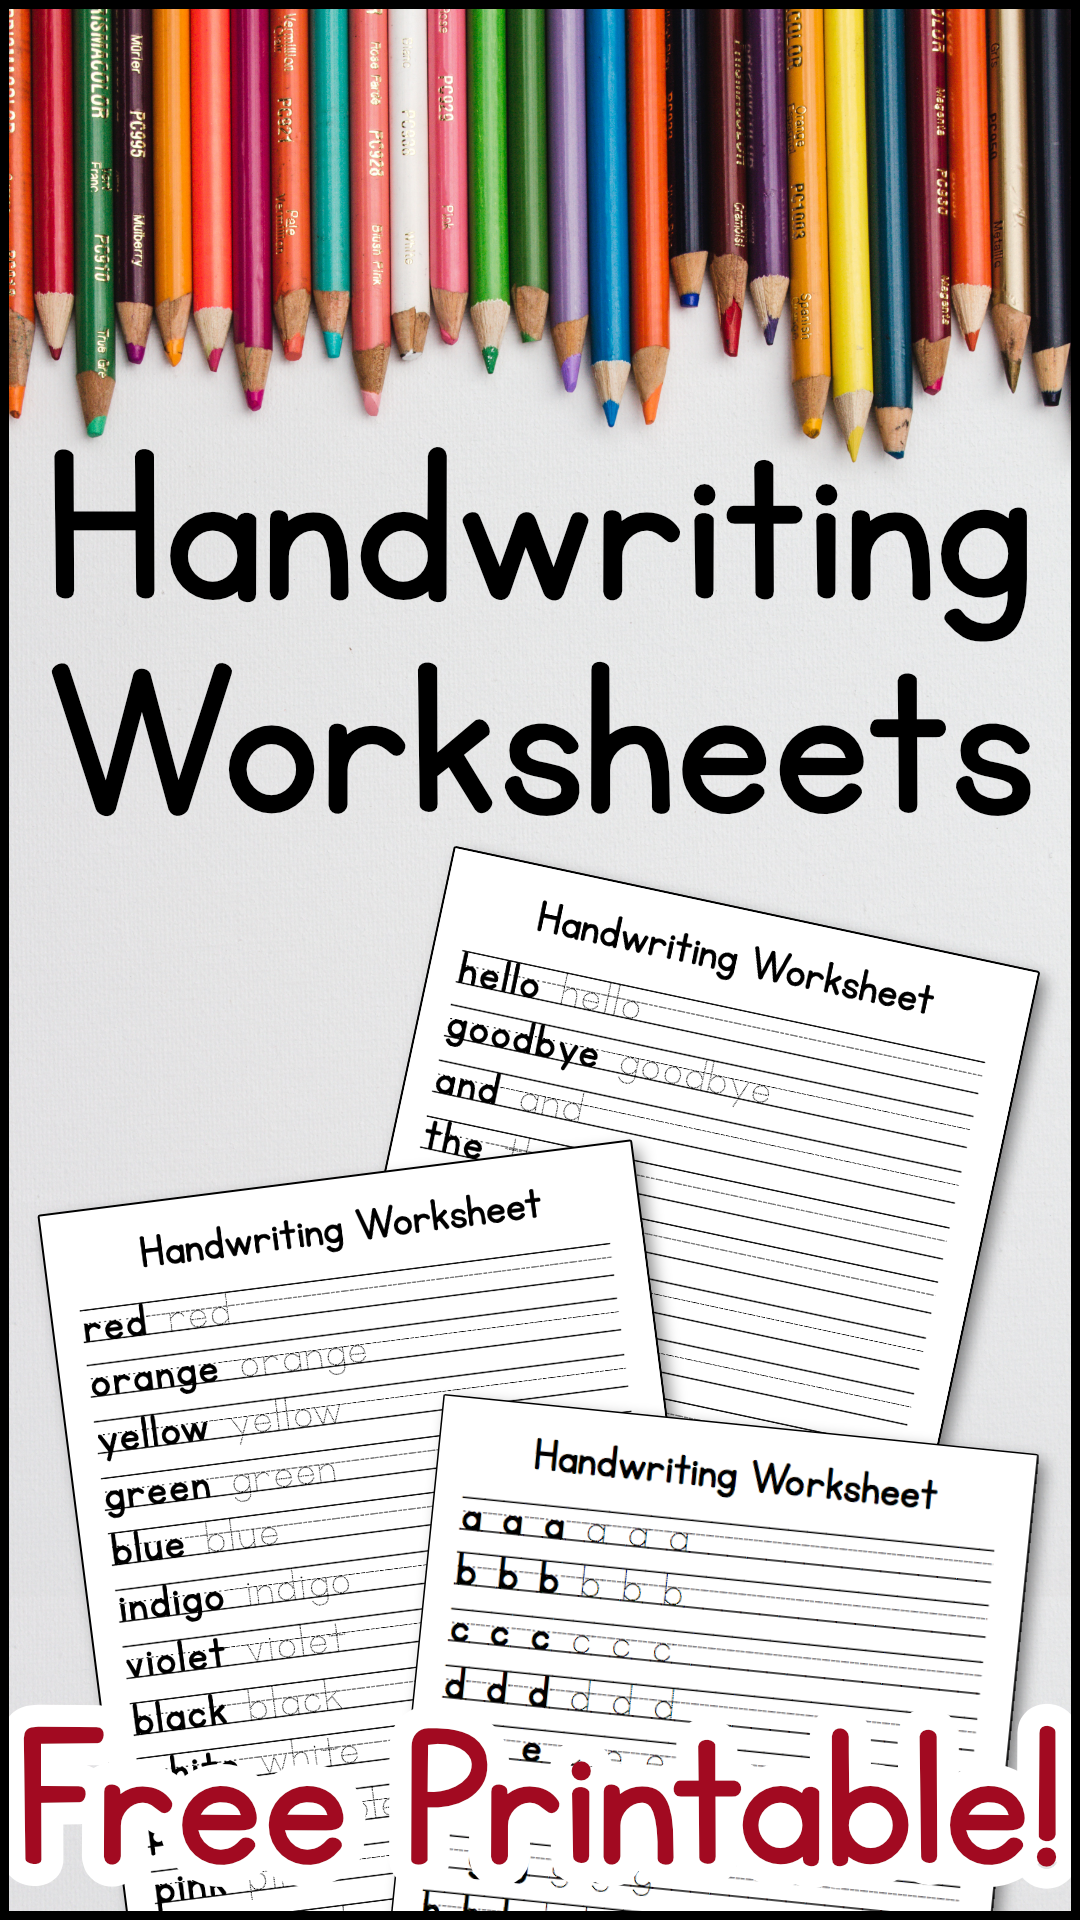 Handwriting Worksheets Free Printable